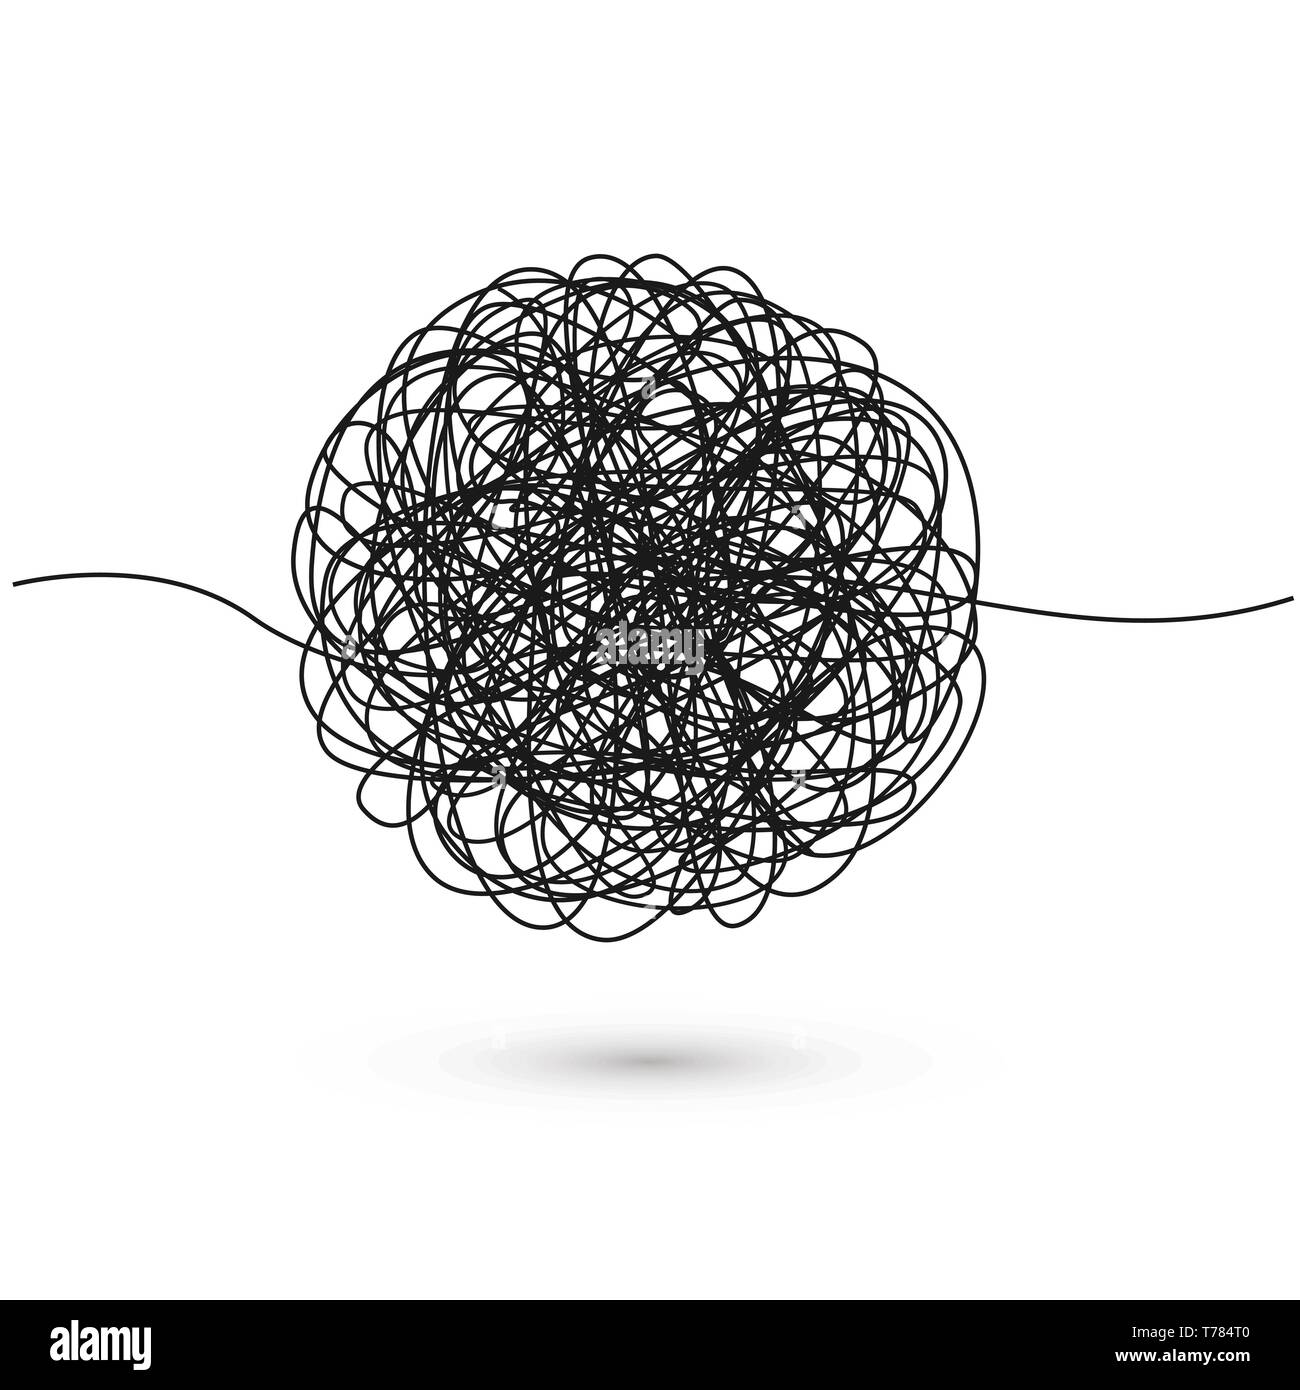 Hand drawn tangle of tangled thread. Sketch spherical abstract scribble shape. Chaotic black line doodle. Vector illustration - Stock Image